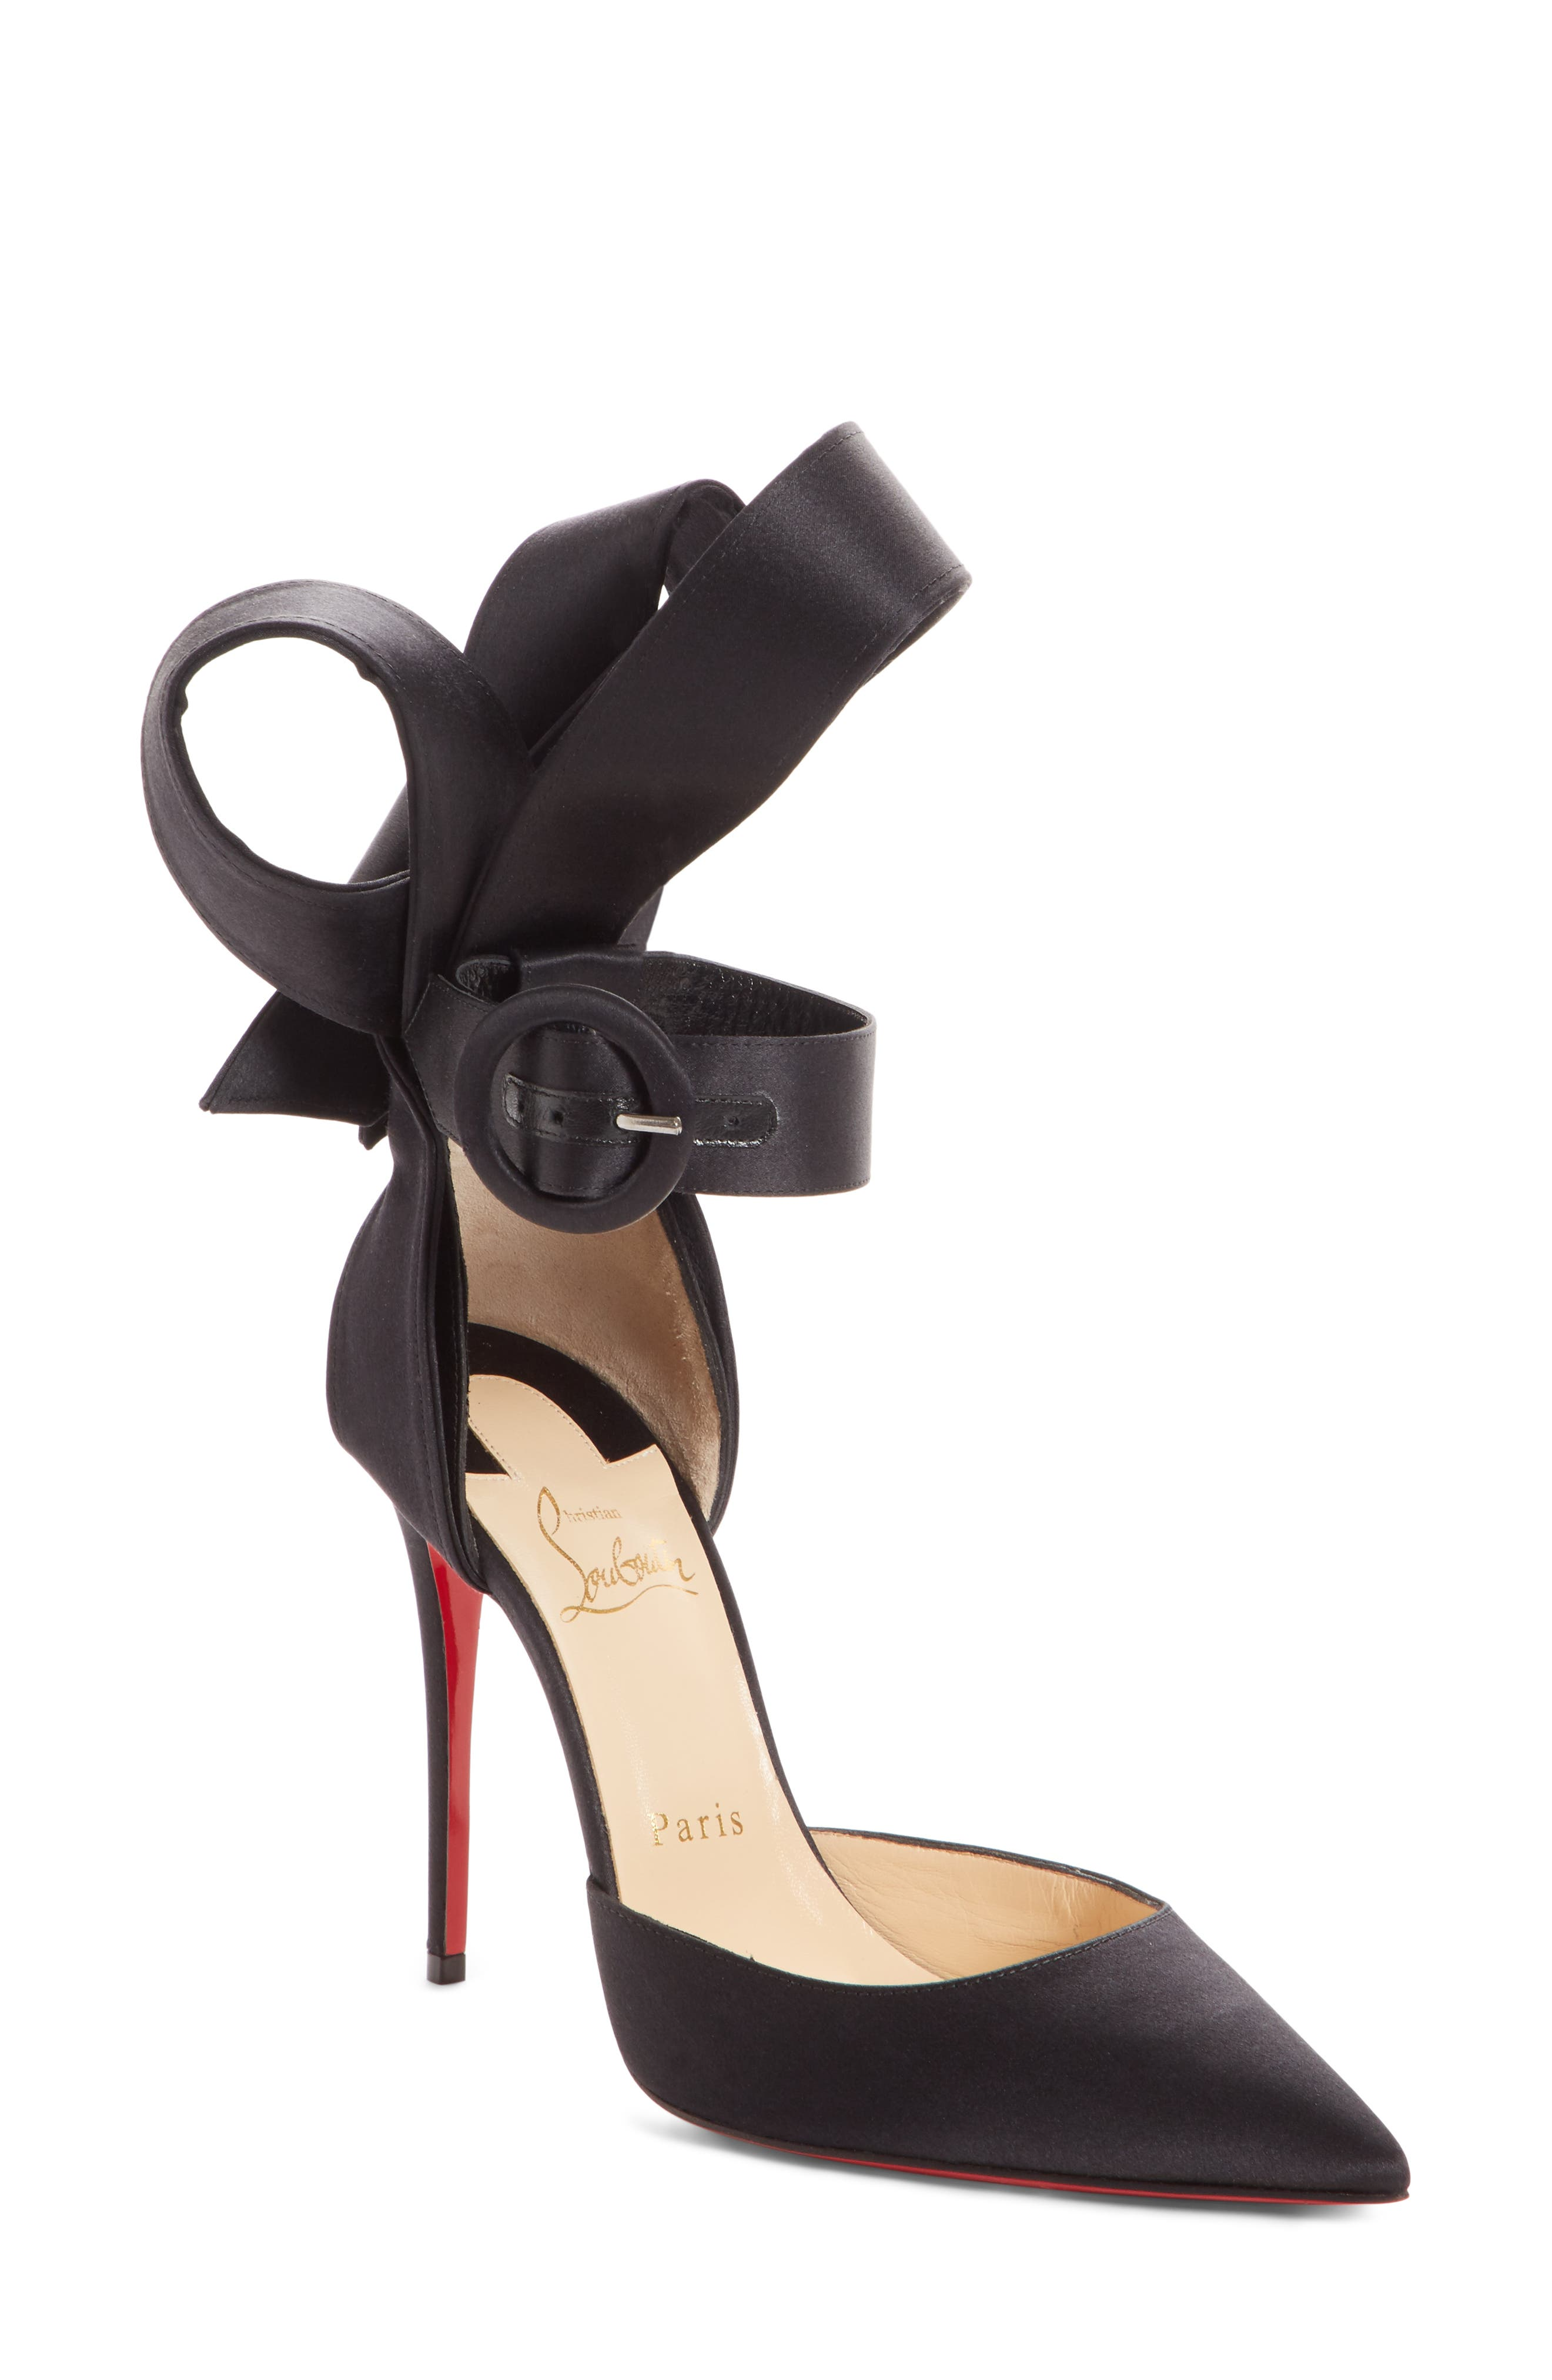 Raissa Bow Ankle Strap Pump,                             Main thumbnail 1, color,                             BLACK